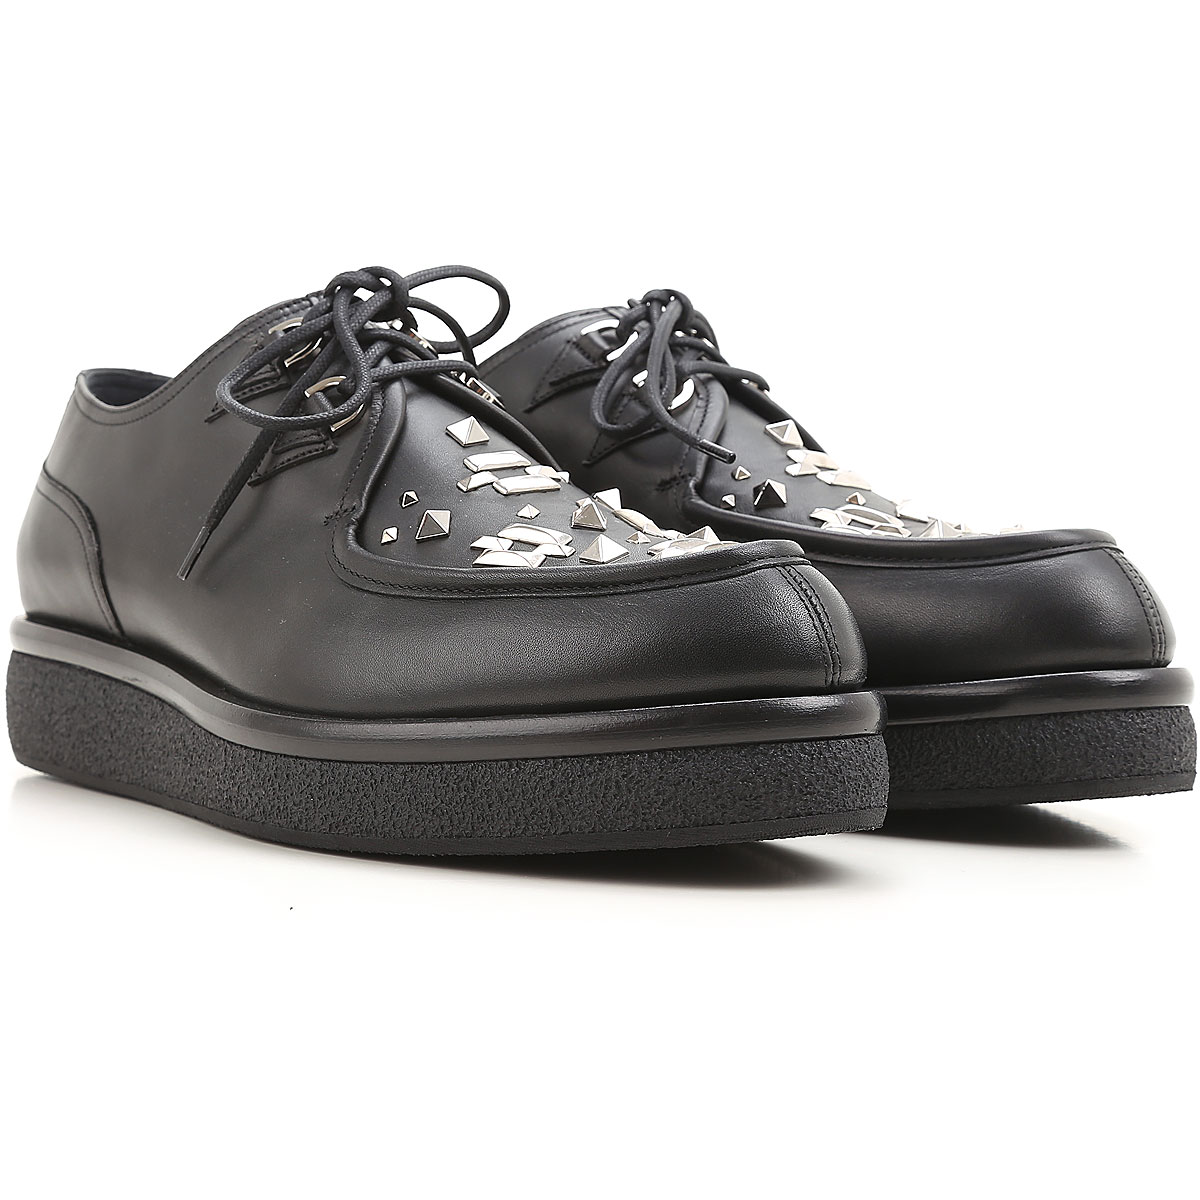 Valentino Garavani Lace Up Shoes for Men Oxfords Derbies and Brogues On Sale in Outlet USA - GOOFASH